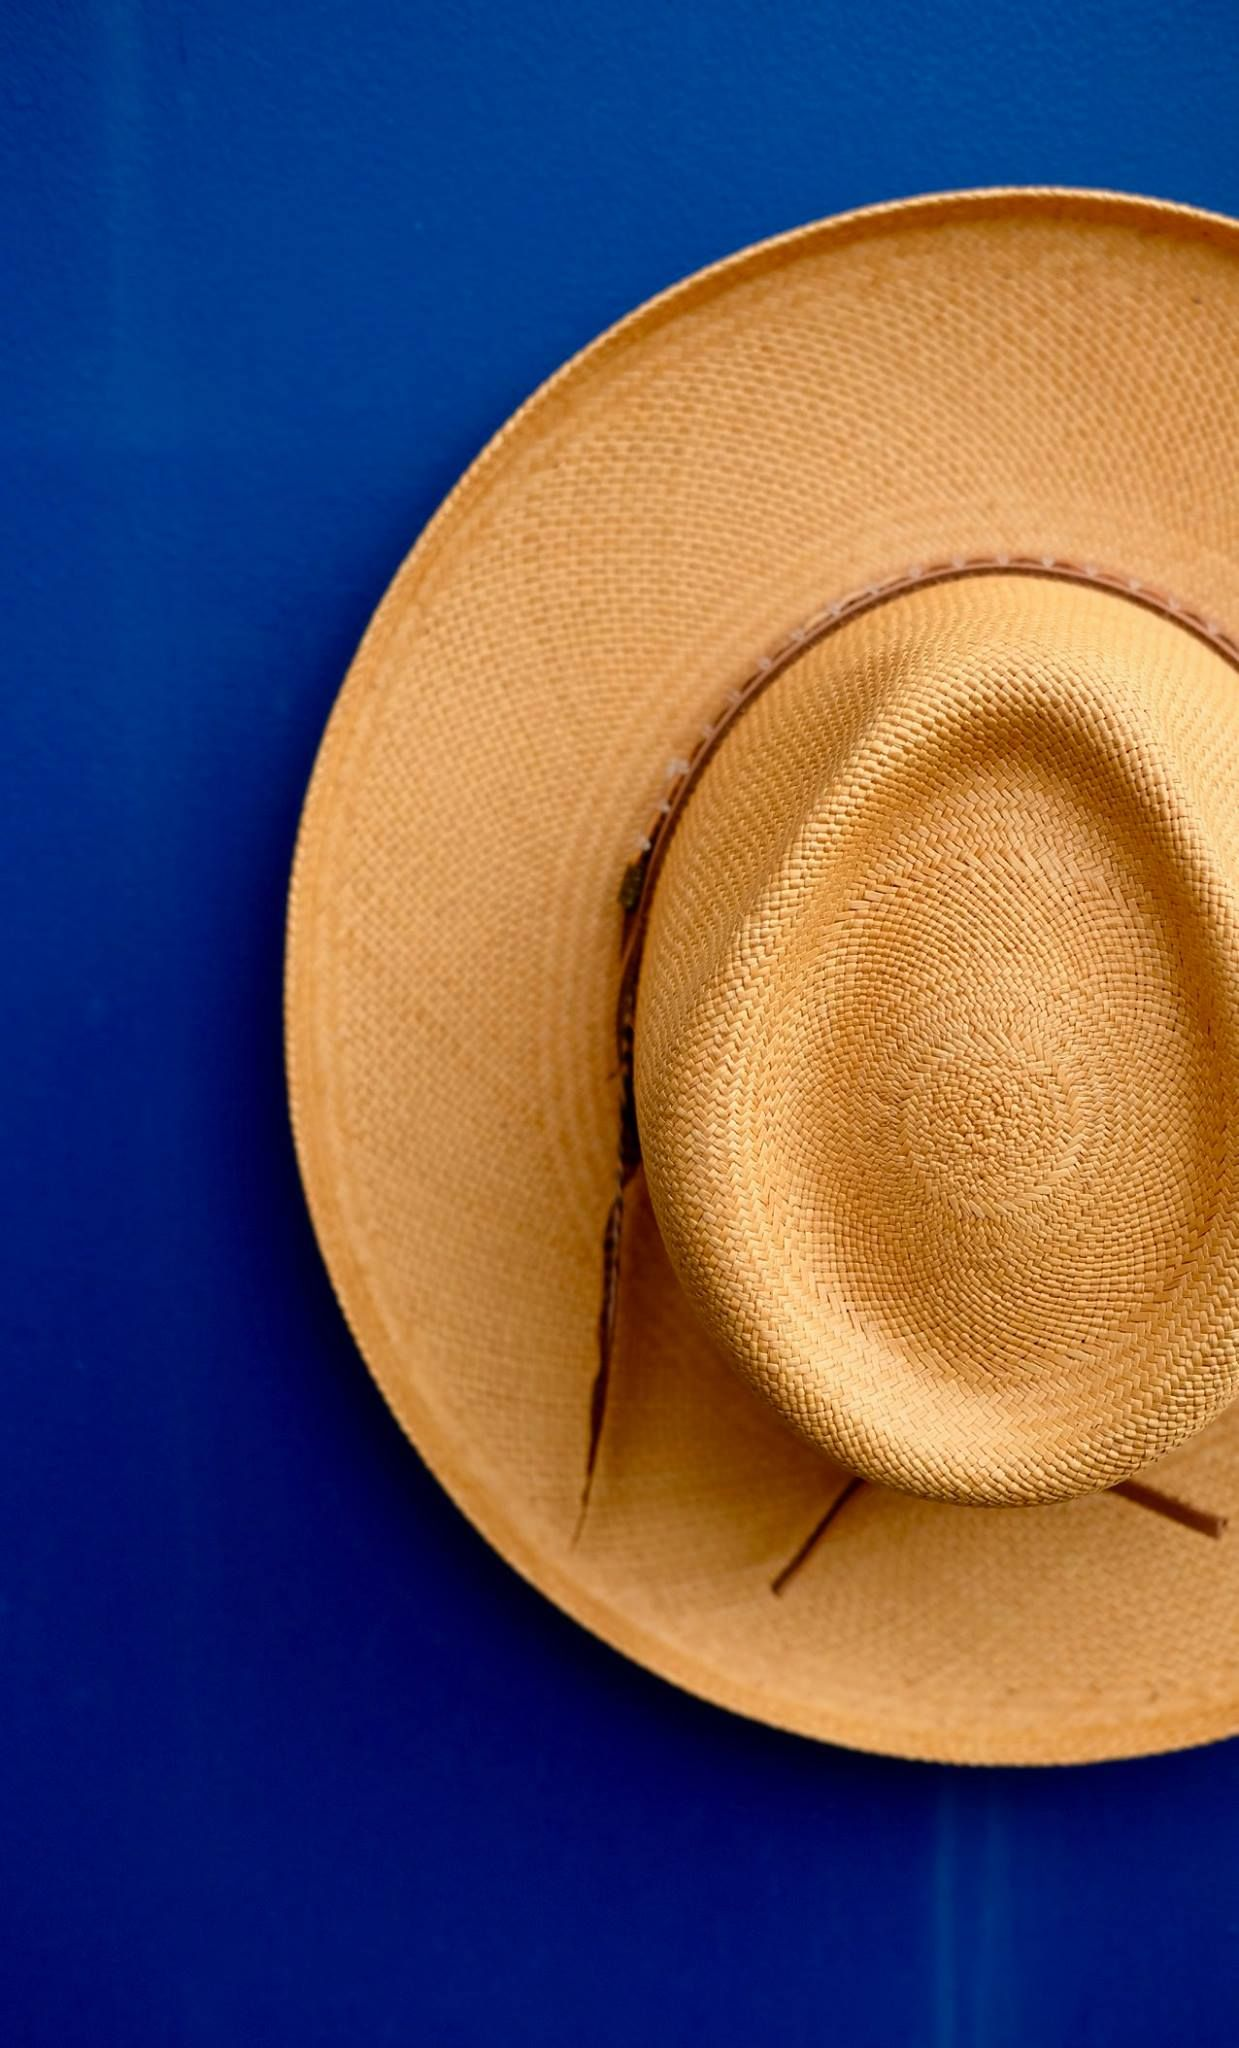 The Val C. is from the Bollman Hat Company Makers  Collection 386dfdb2b7c5